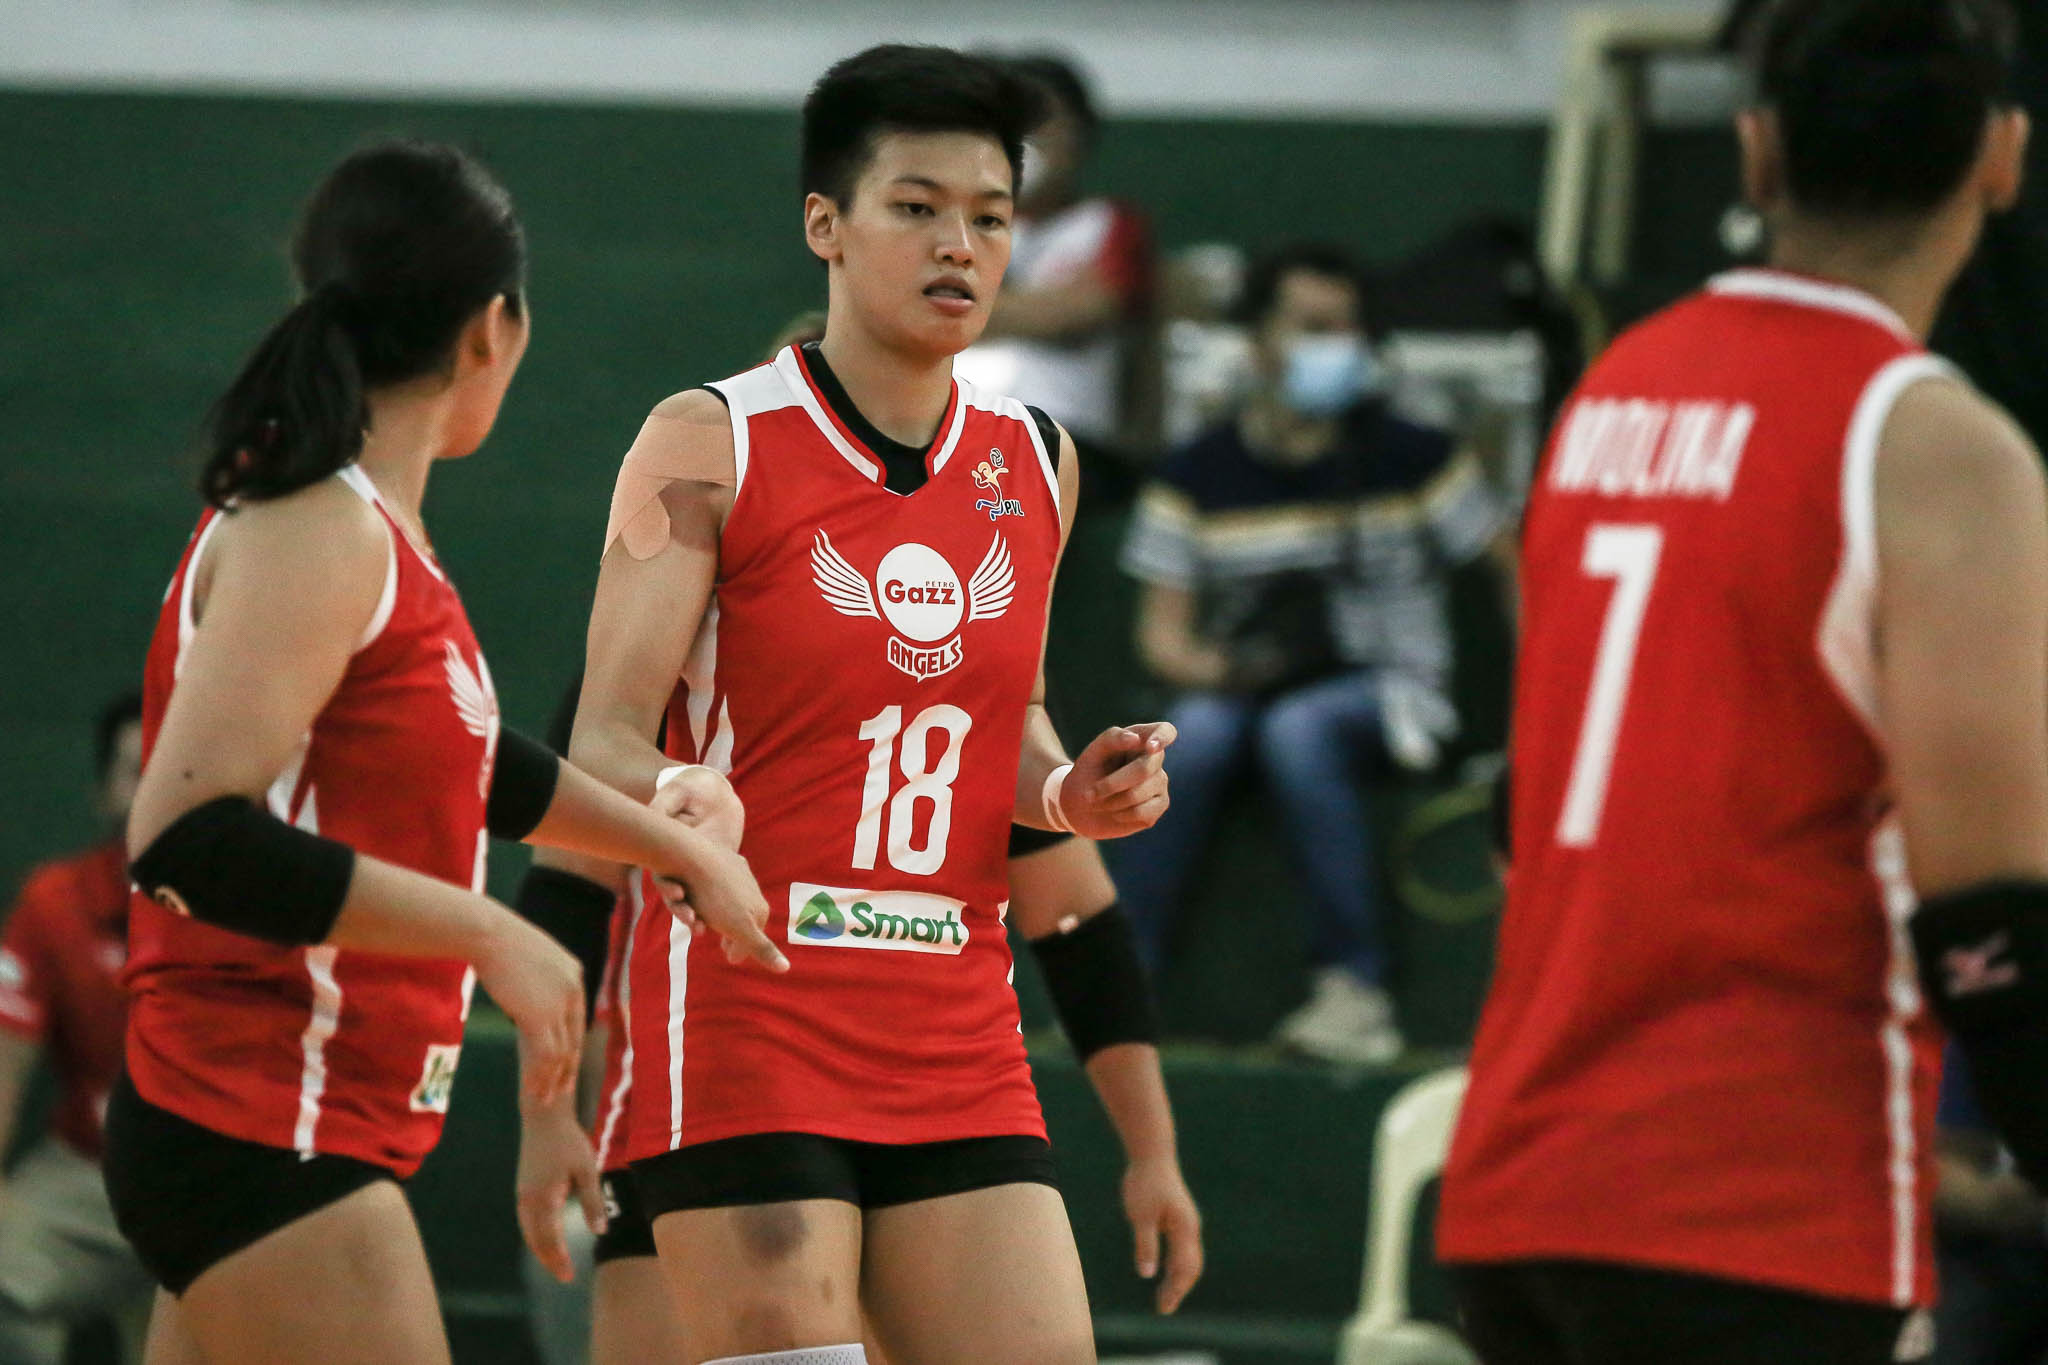 PVL-BUBBLE-2021-Petro-Gazz-vs-Army-Meneses-Petro-Gazz-3 Ria Meneses continues to set bar high for PVL middles News PVL Volleyball  - philippine sports news